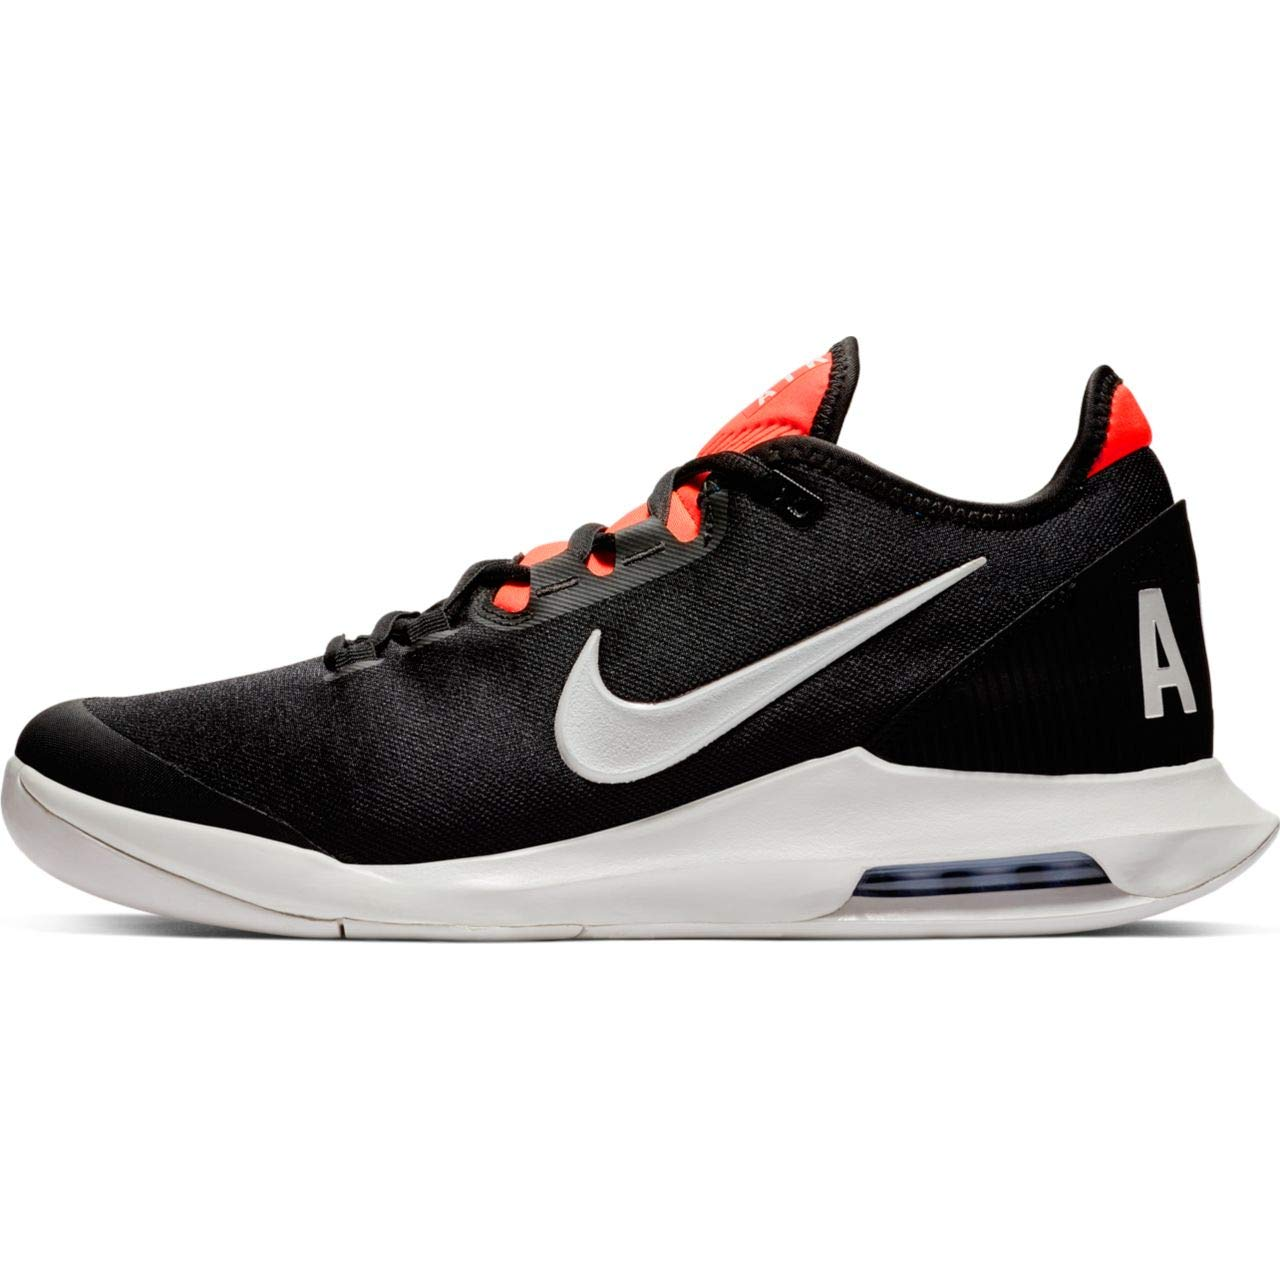 5d5787ff Amazon.com | Nike AO7351-100: Men's Air Max Wildcard Red/White/Black Tennis  Sneakers | Basketball